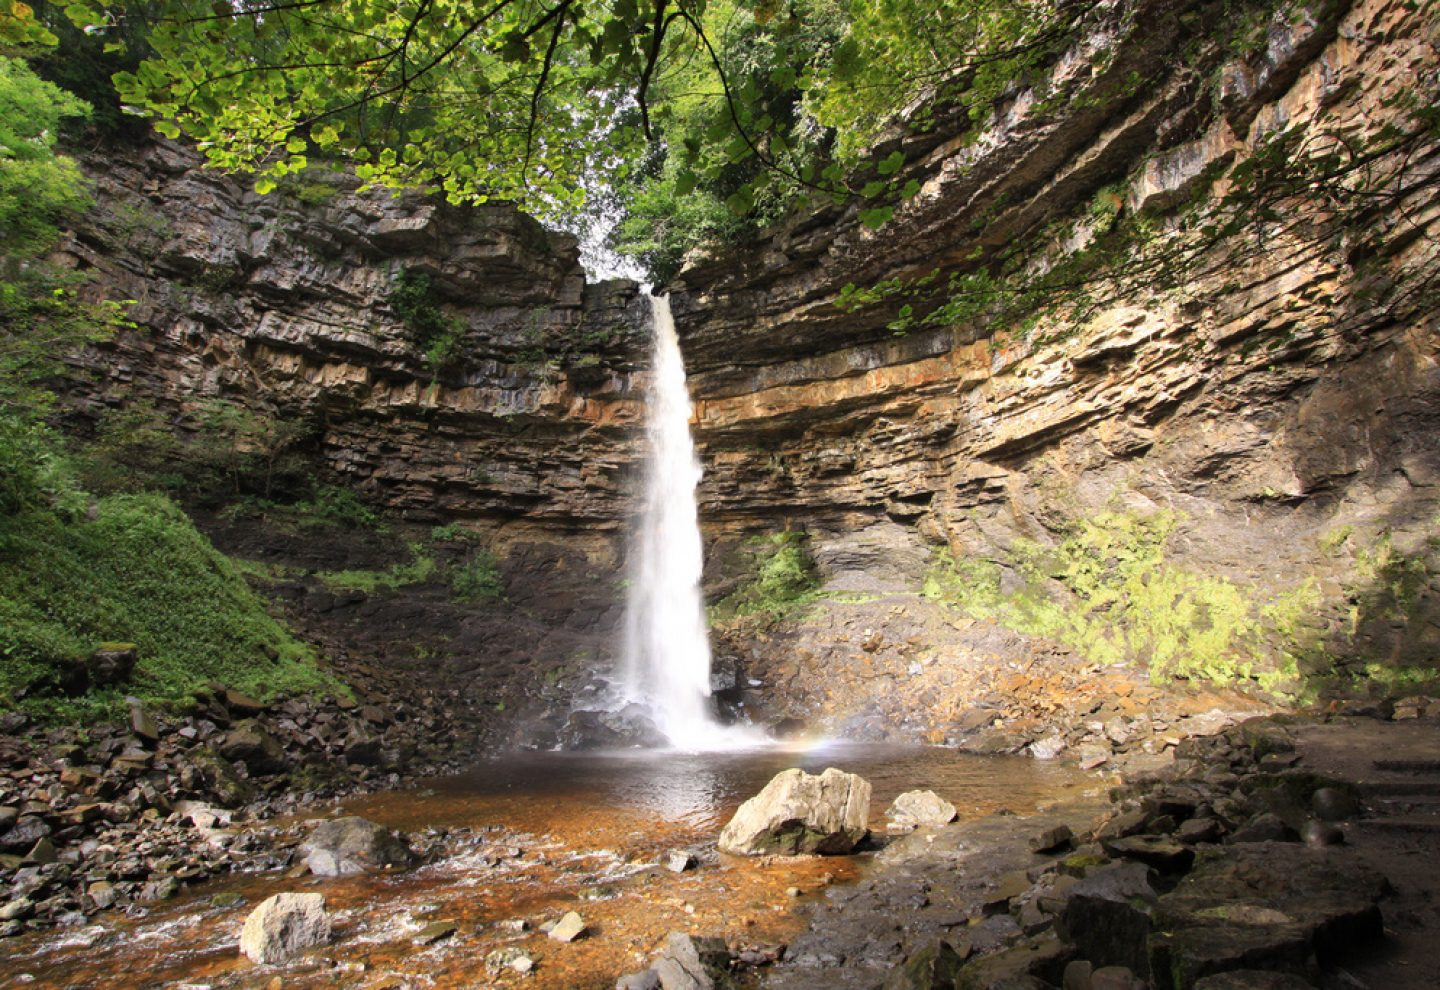 Eight must-see waterfalls of the Yorkshire Dales